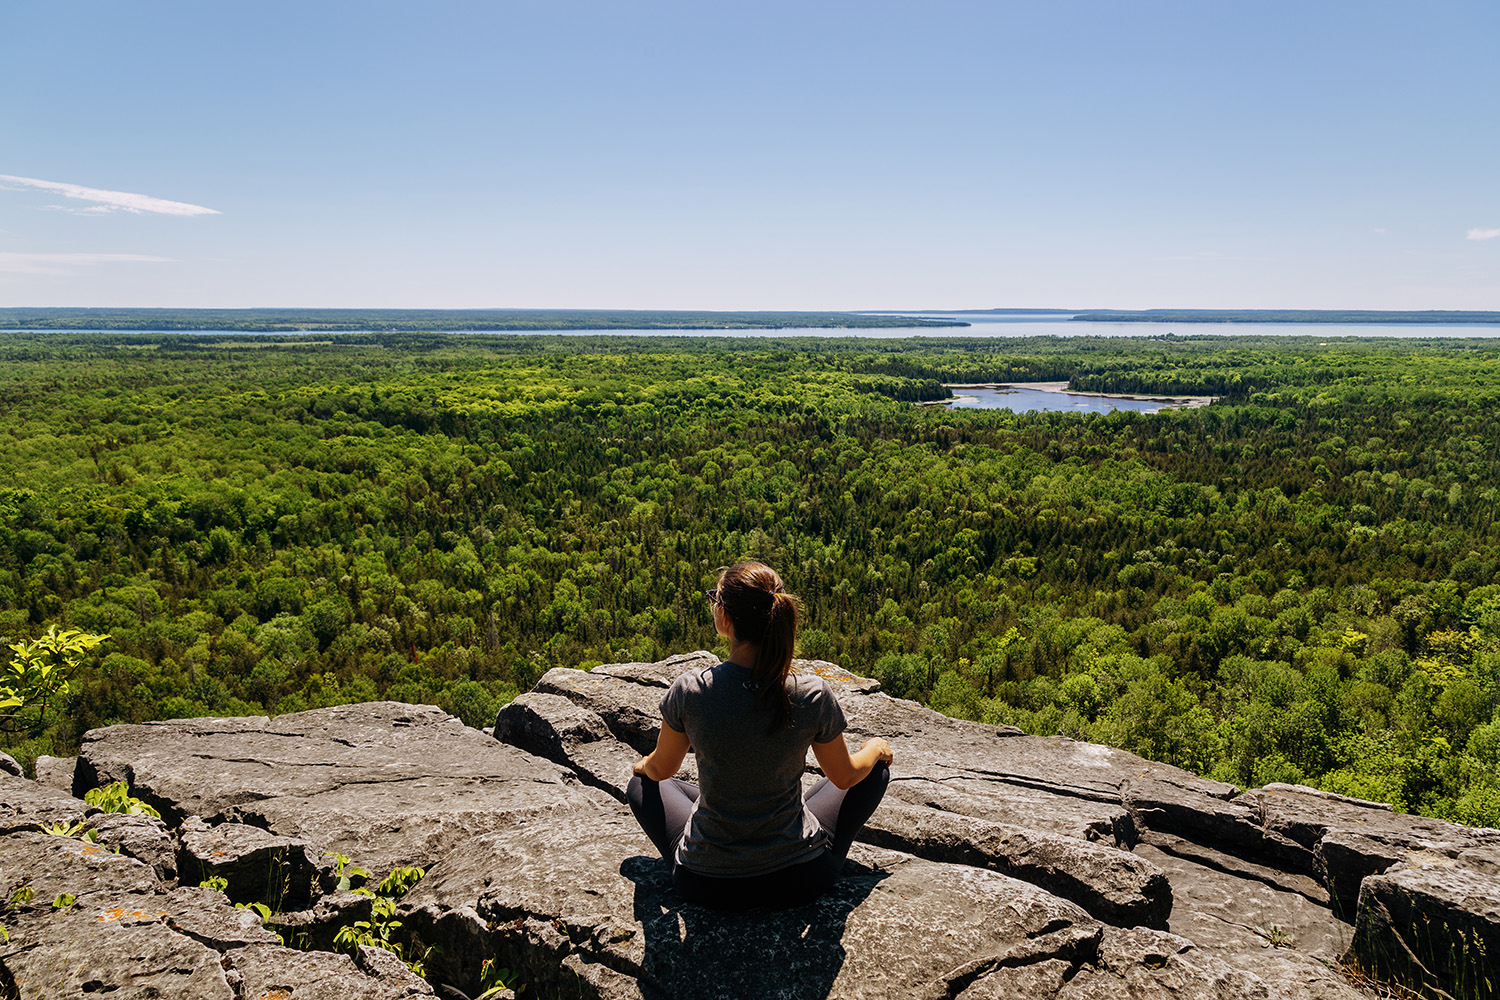 cup and saucer trail hikes near toronto